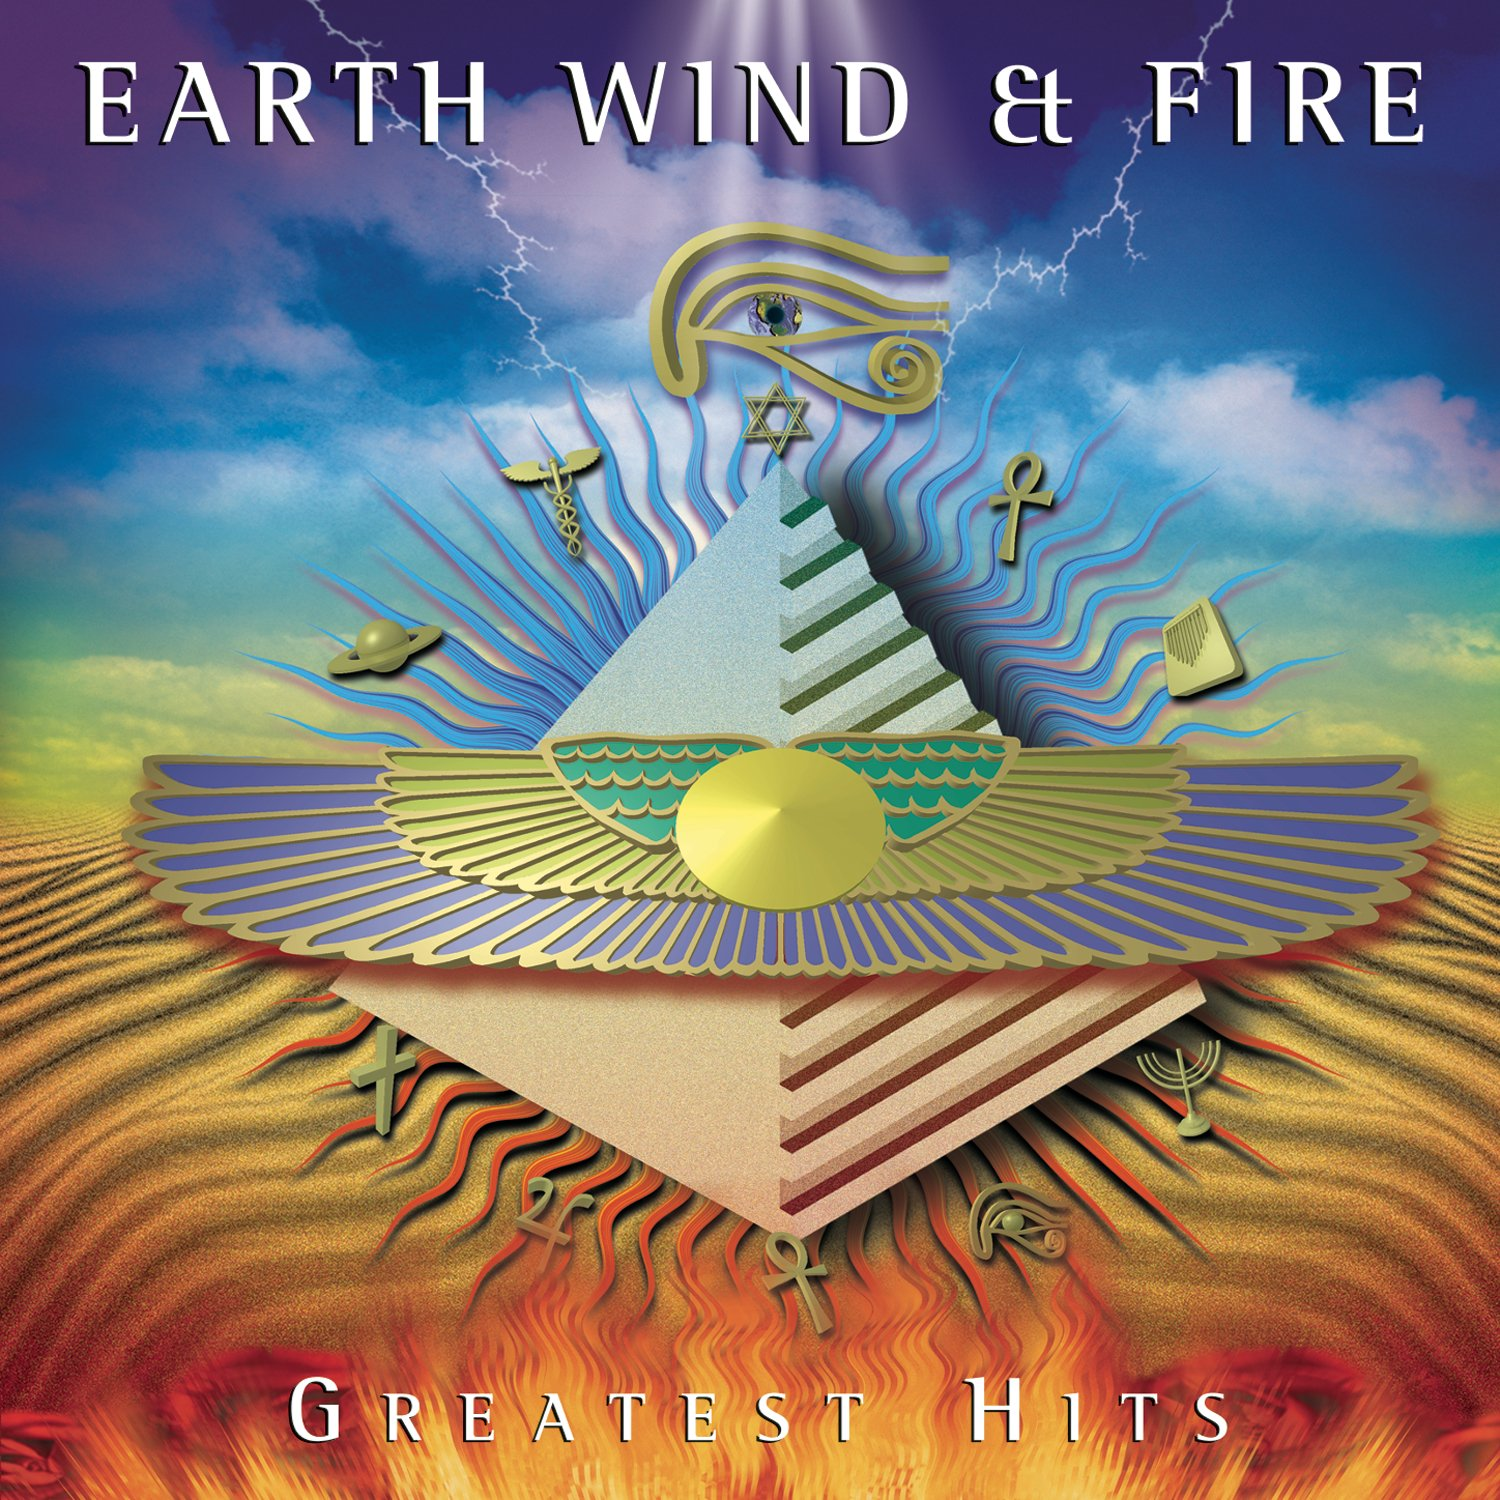 amazon greatest hits earth wind fire クラシックソウル 音楽